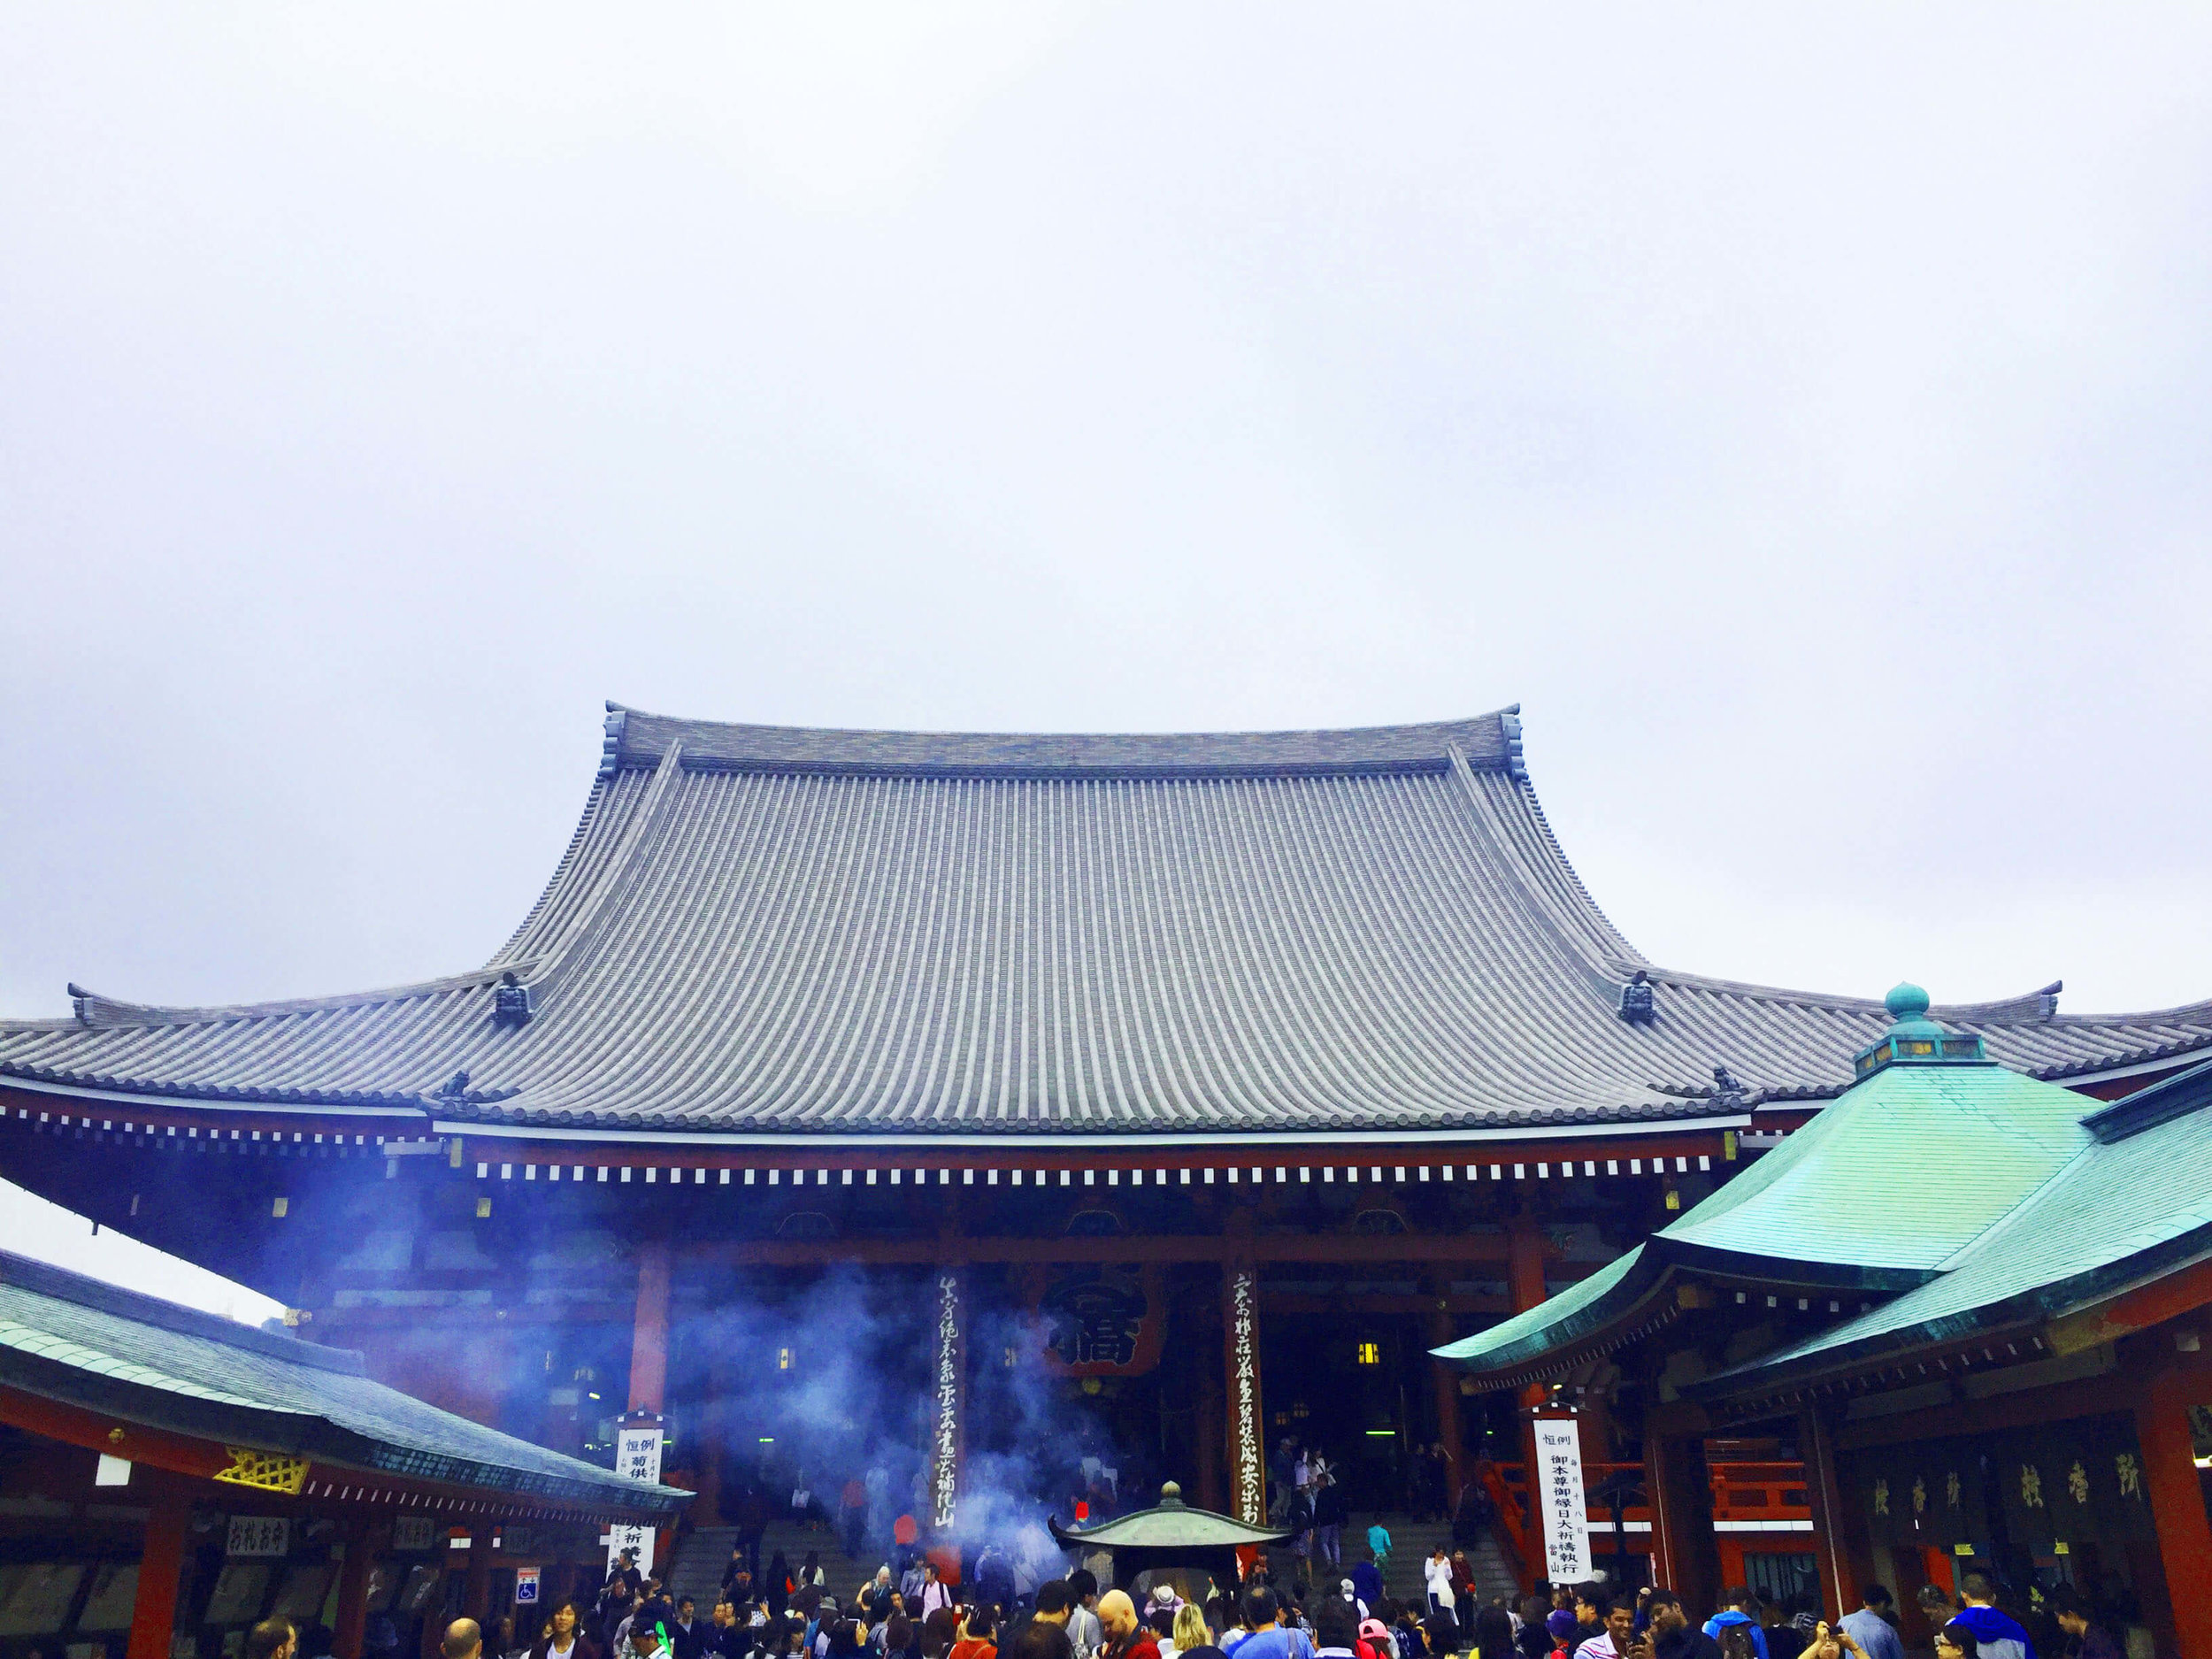 Walking to Sensoji Temple was well worth it!